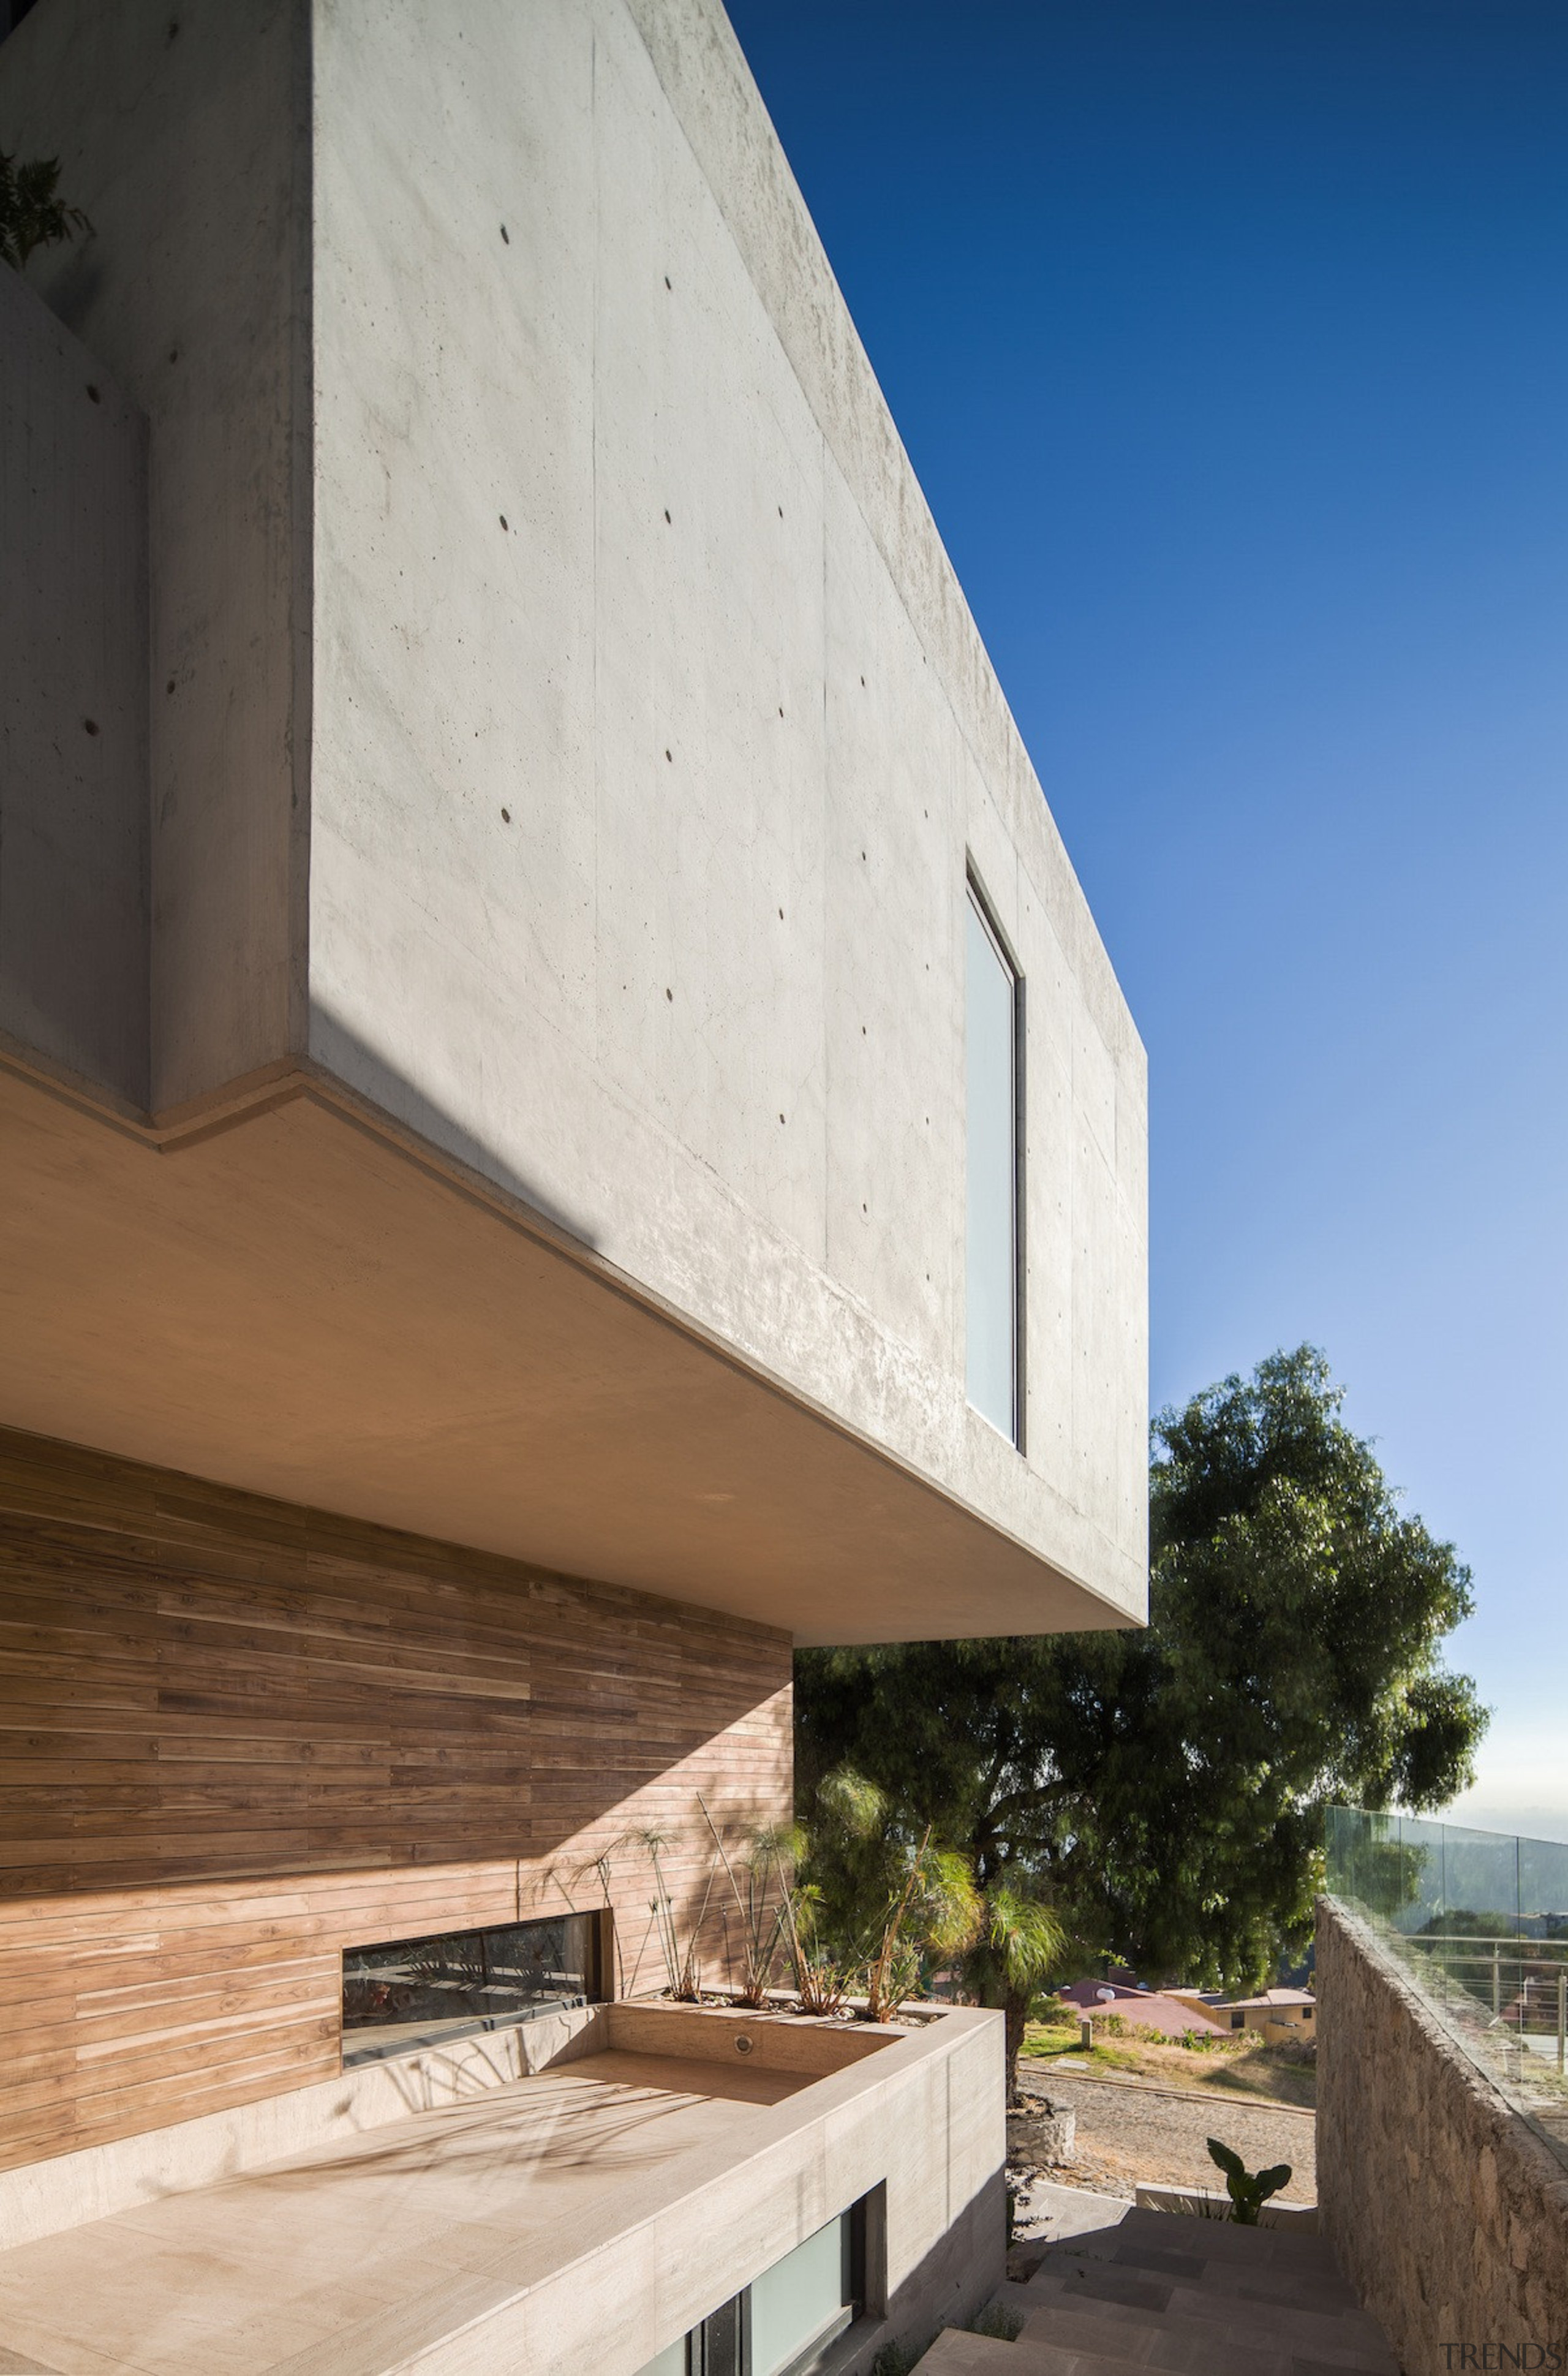 Concrete rings the home - Concrete rings the architecture, building, daylighting, facade, house, real estate, sky